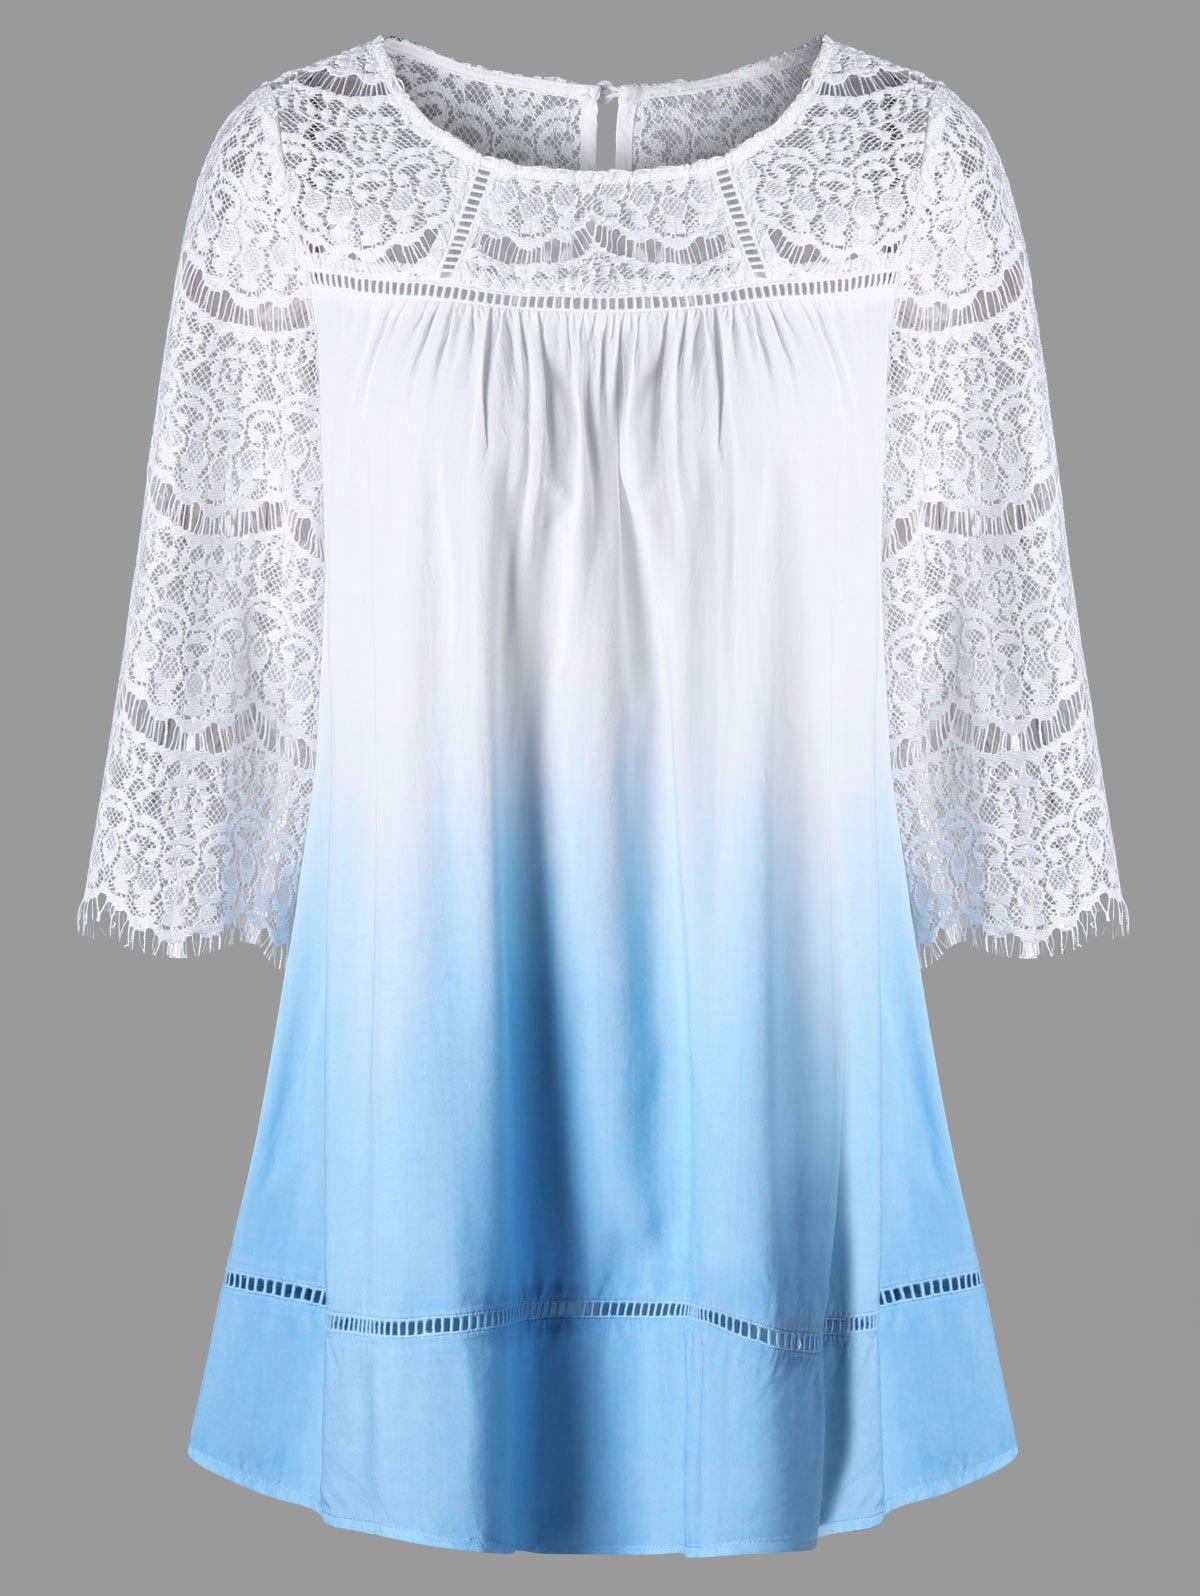 Lace Yoke Ombre Tunic Top - Nuageux L